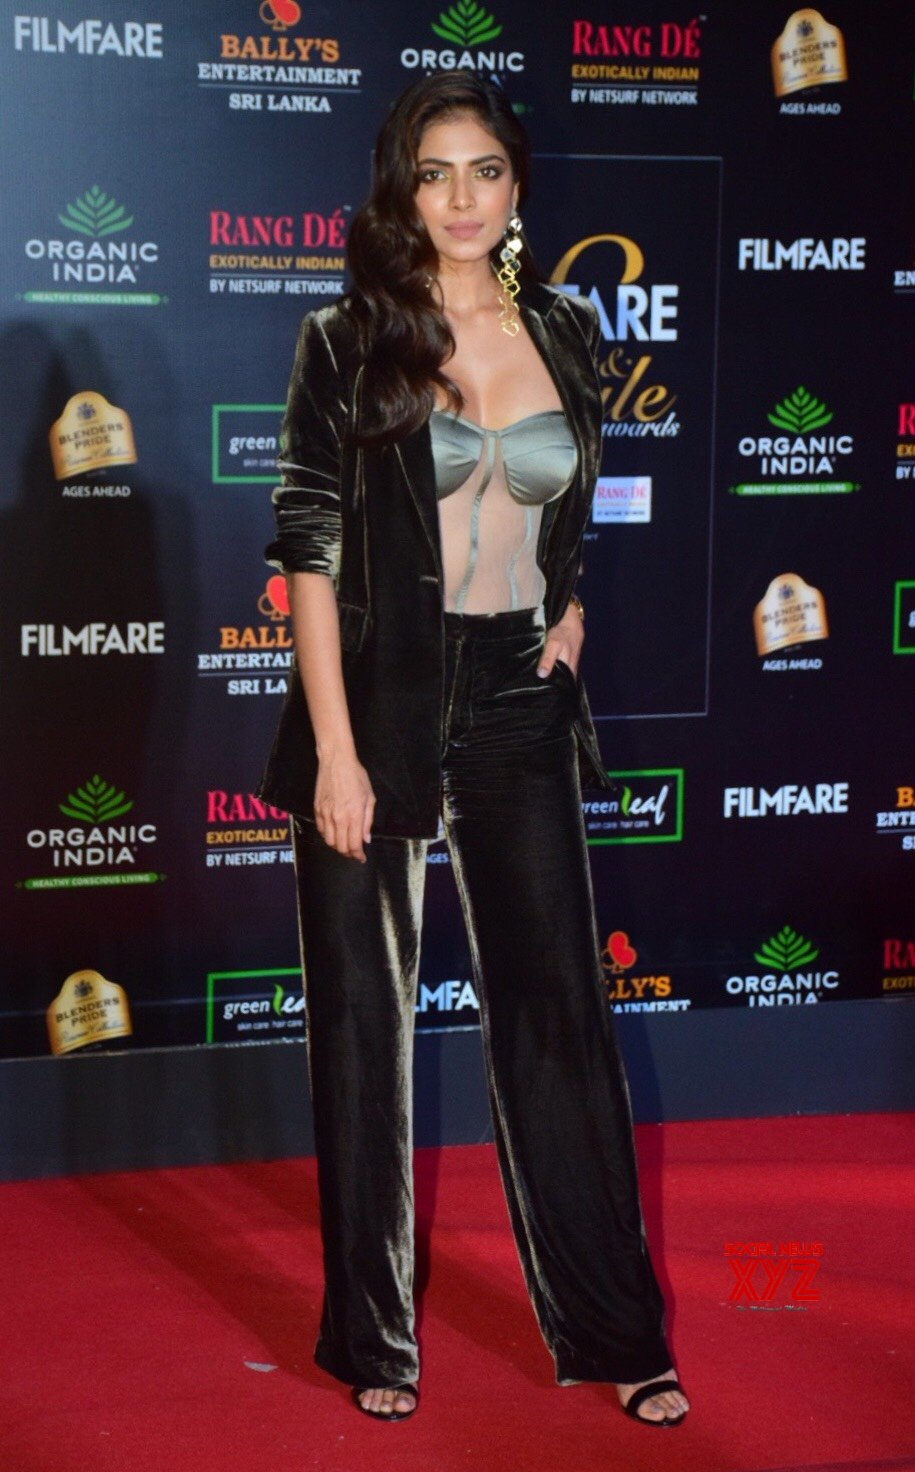 Actress Malavika Mohanan Hot HD Stills From Filmfare Glamour And Style Awards 2019 Red Carpet